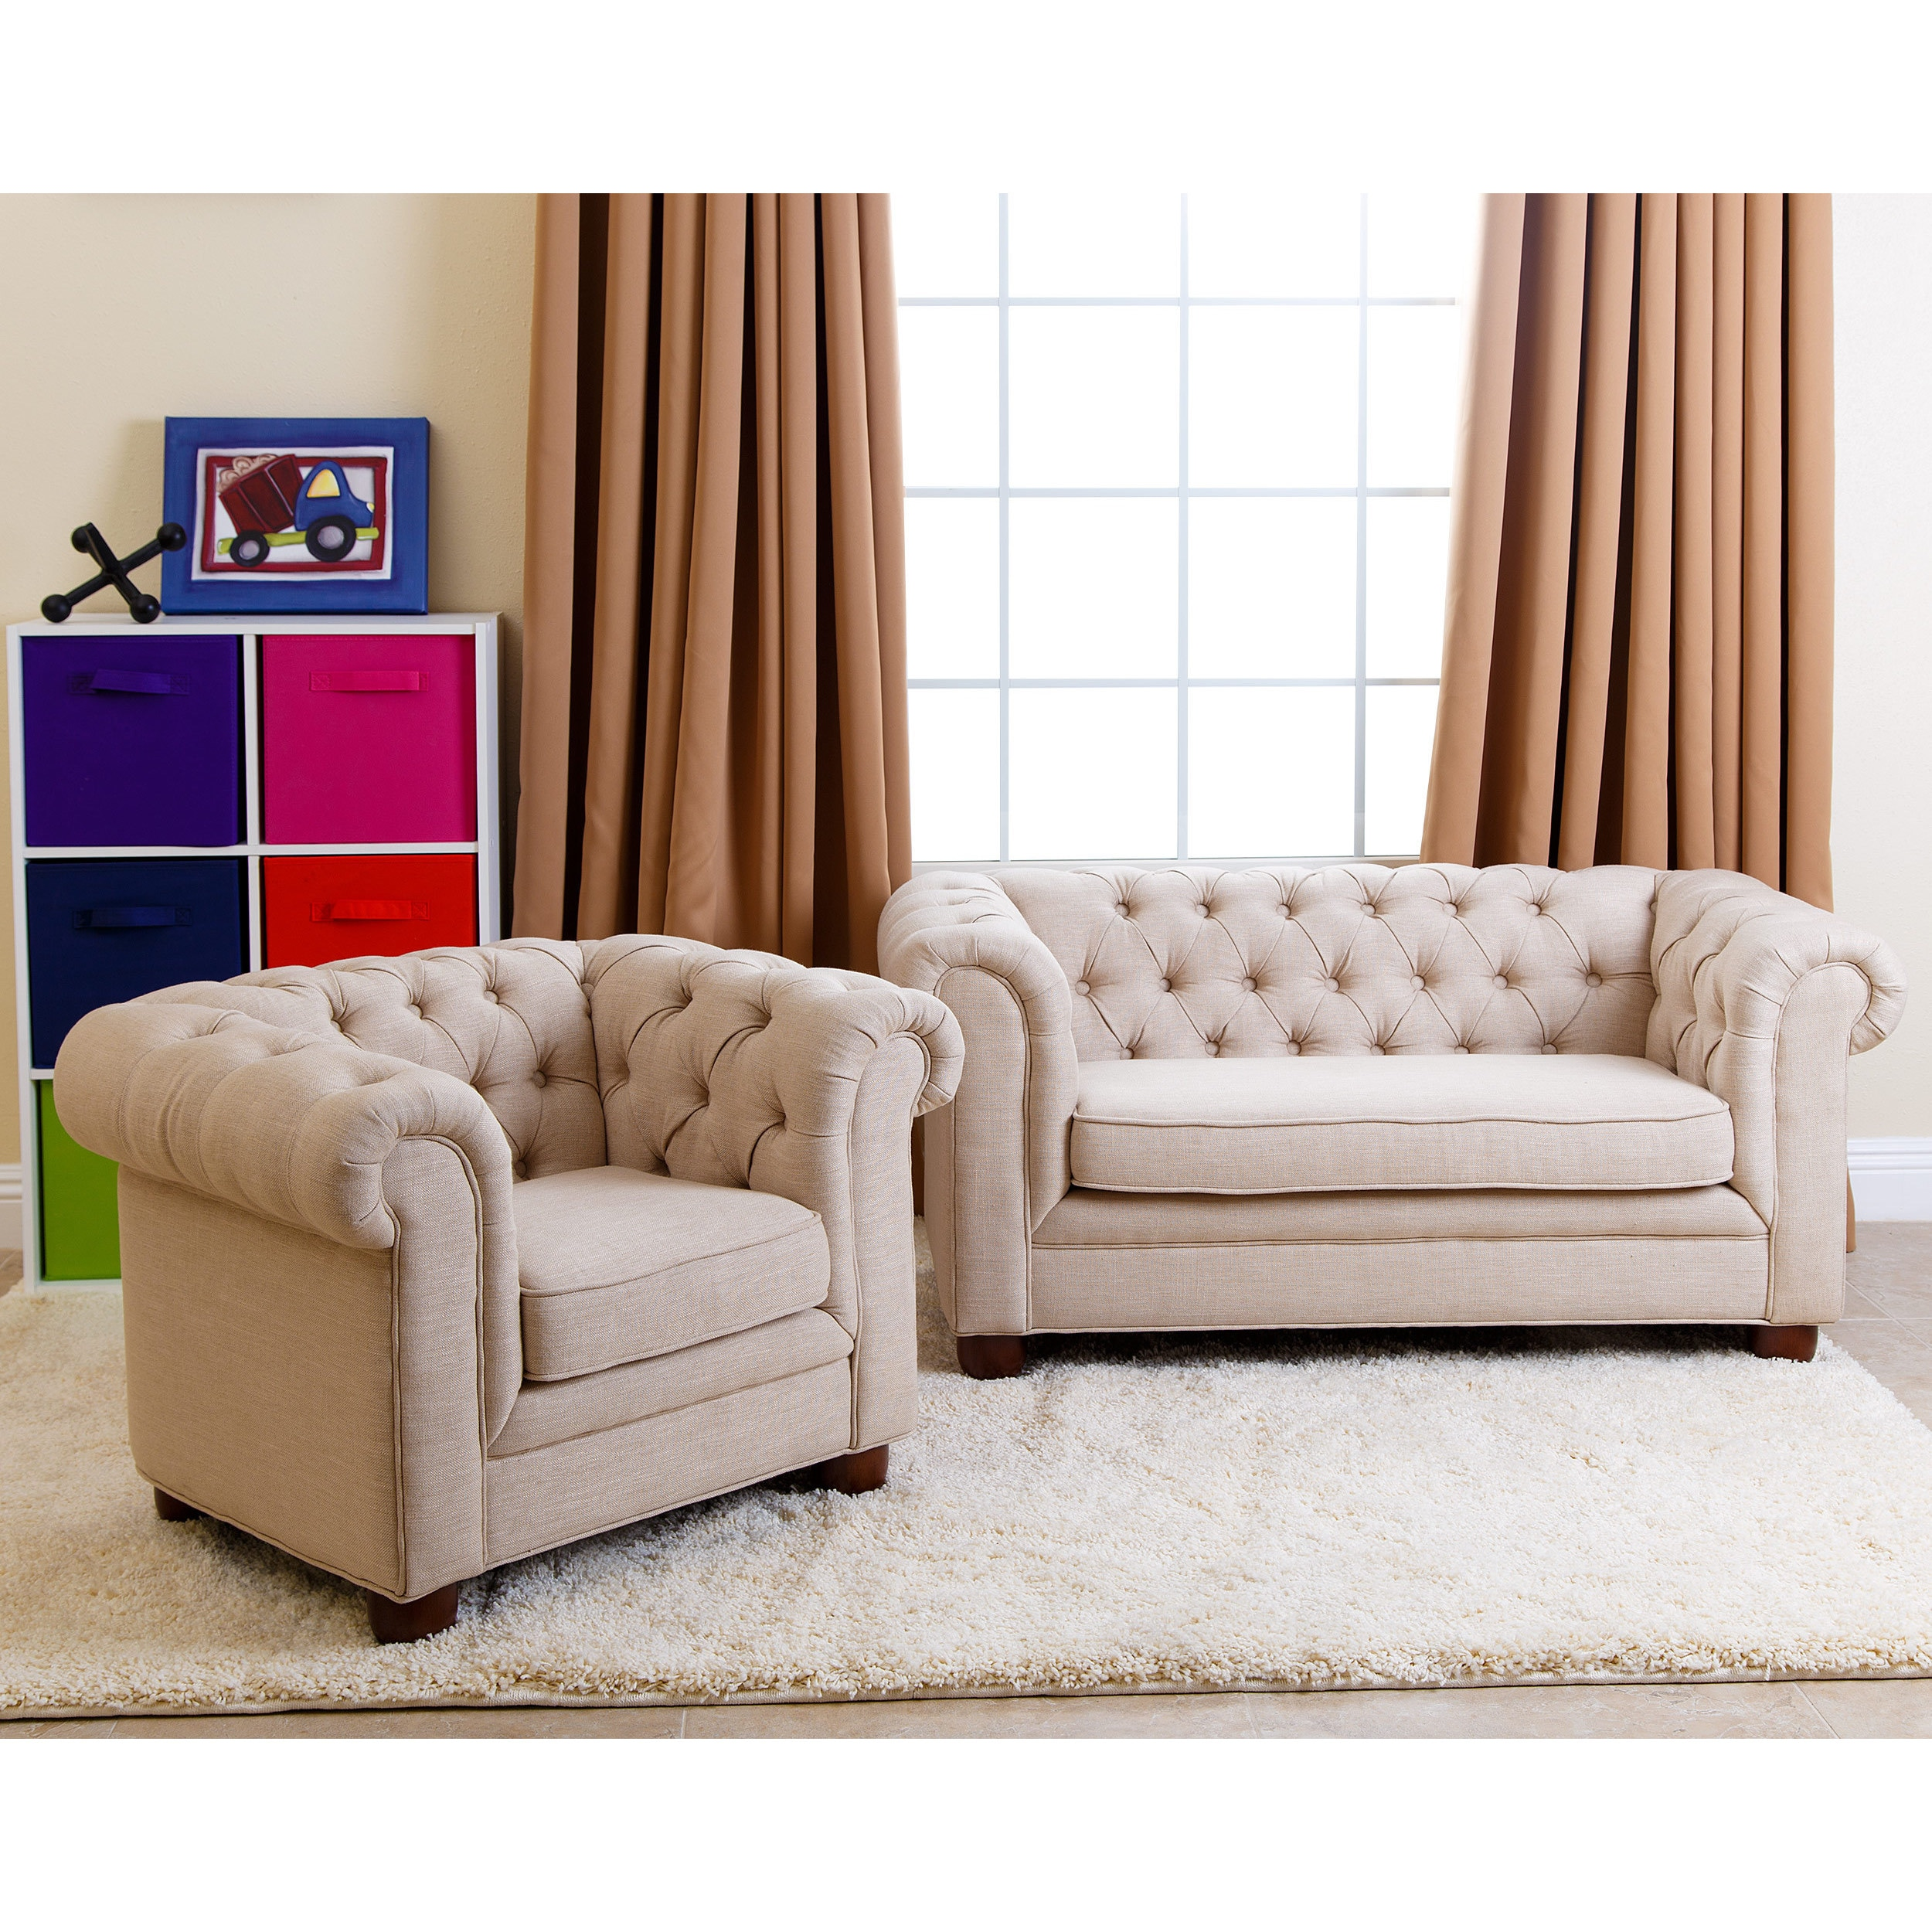 kids s living size for kid boys small uk furniture bedroom room baby couch ideas toddler children sized ayathebook com curtains girl decor toys sofa